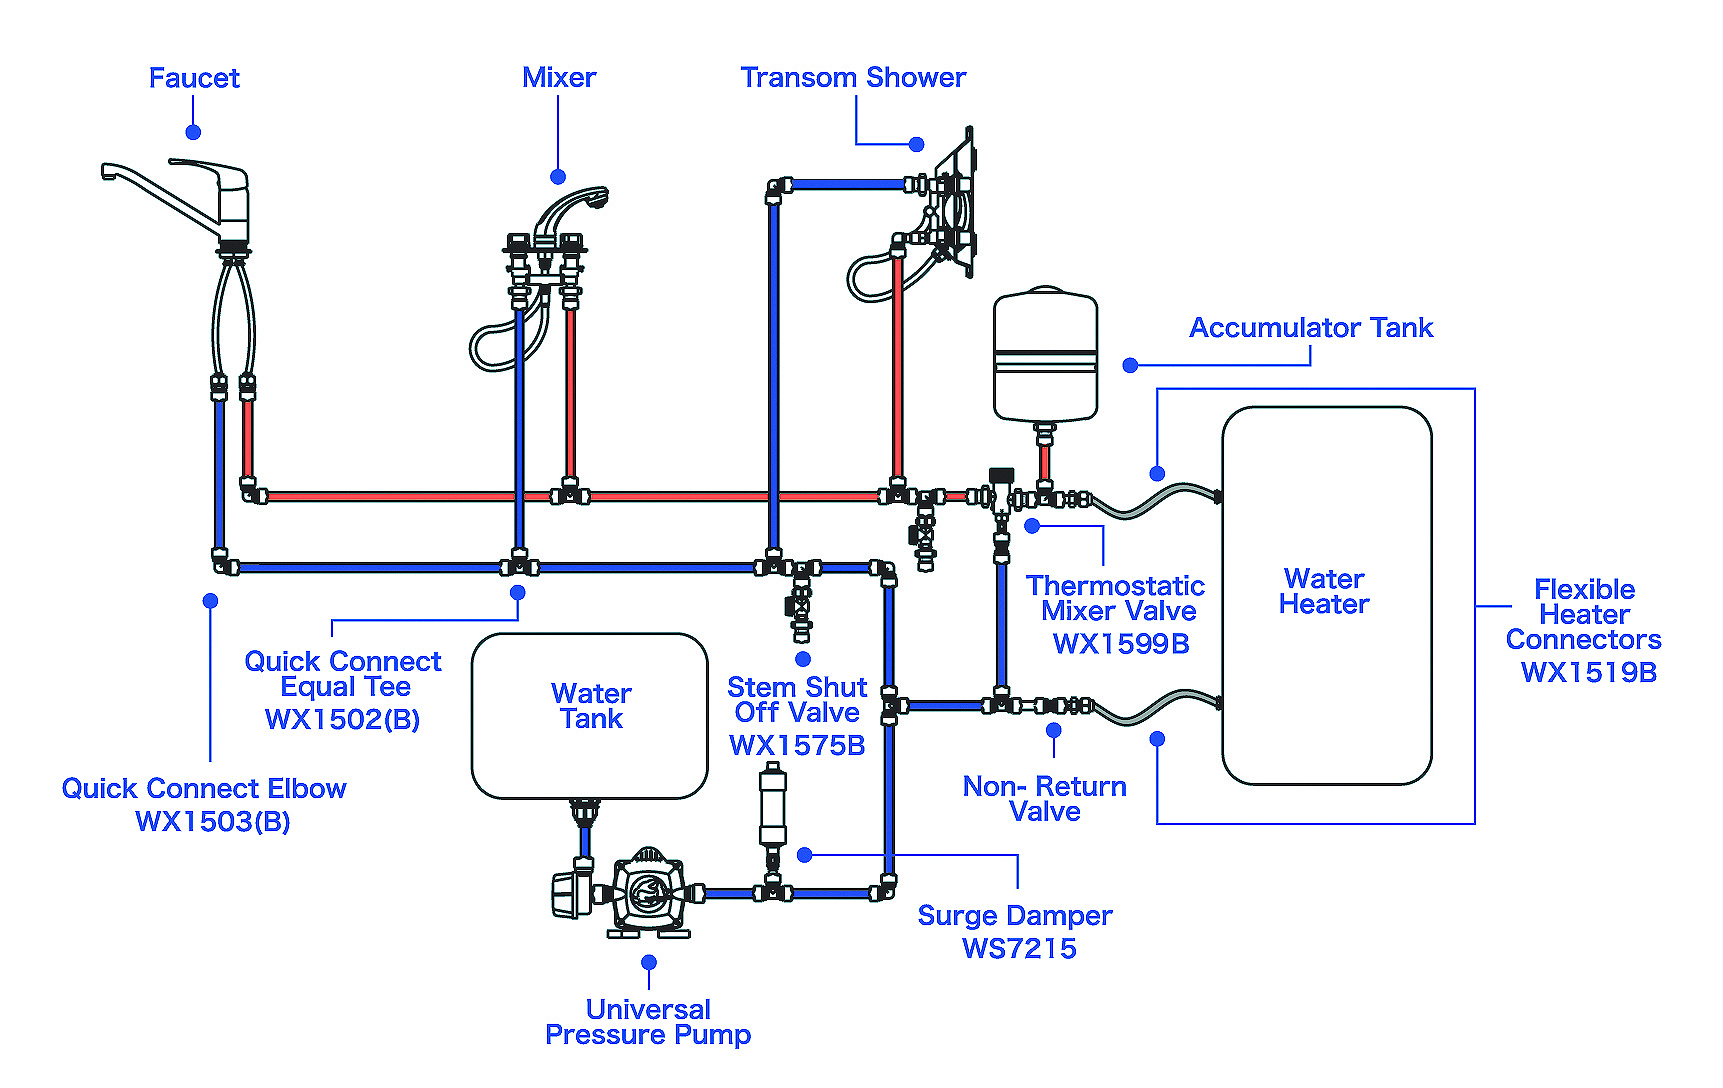 Chilled Water Pump Wiring Diagram - Auto Electrical Wiring Diagramledningsdiagrama.webredirect.org